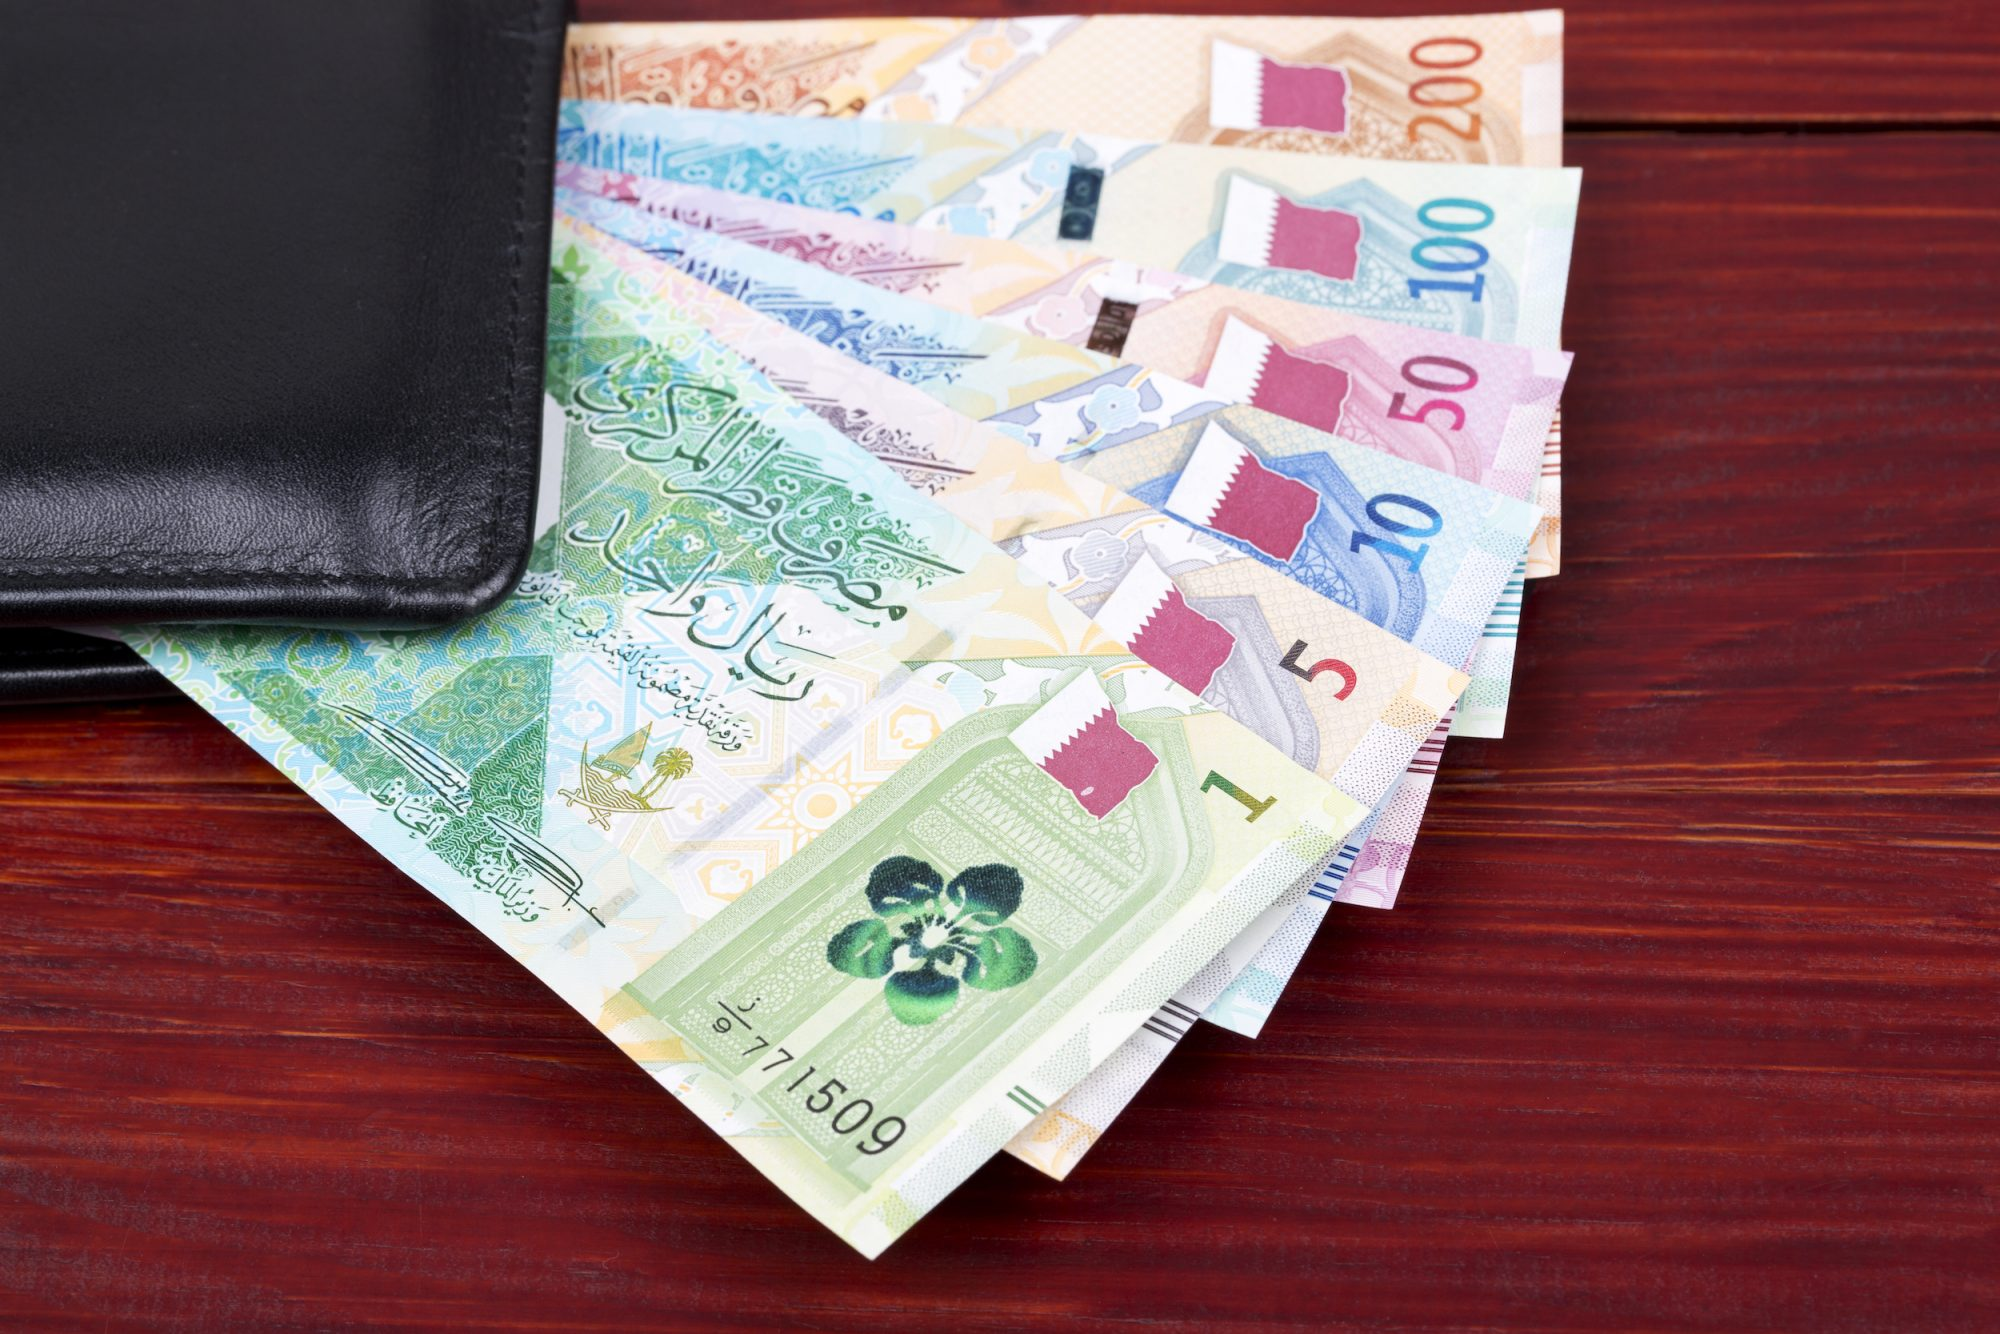 Replacing old currencies on time needs a regulatory mechanism